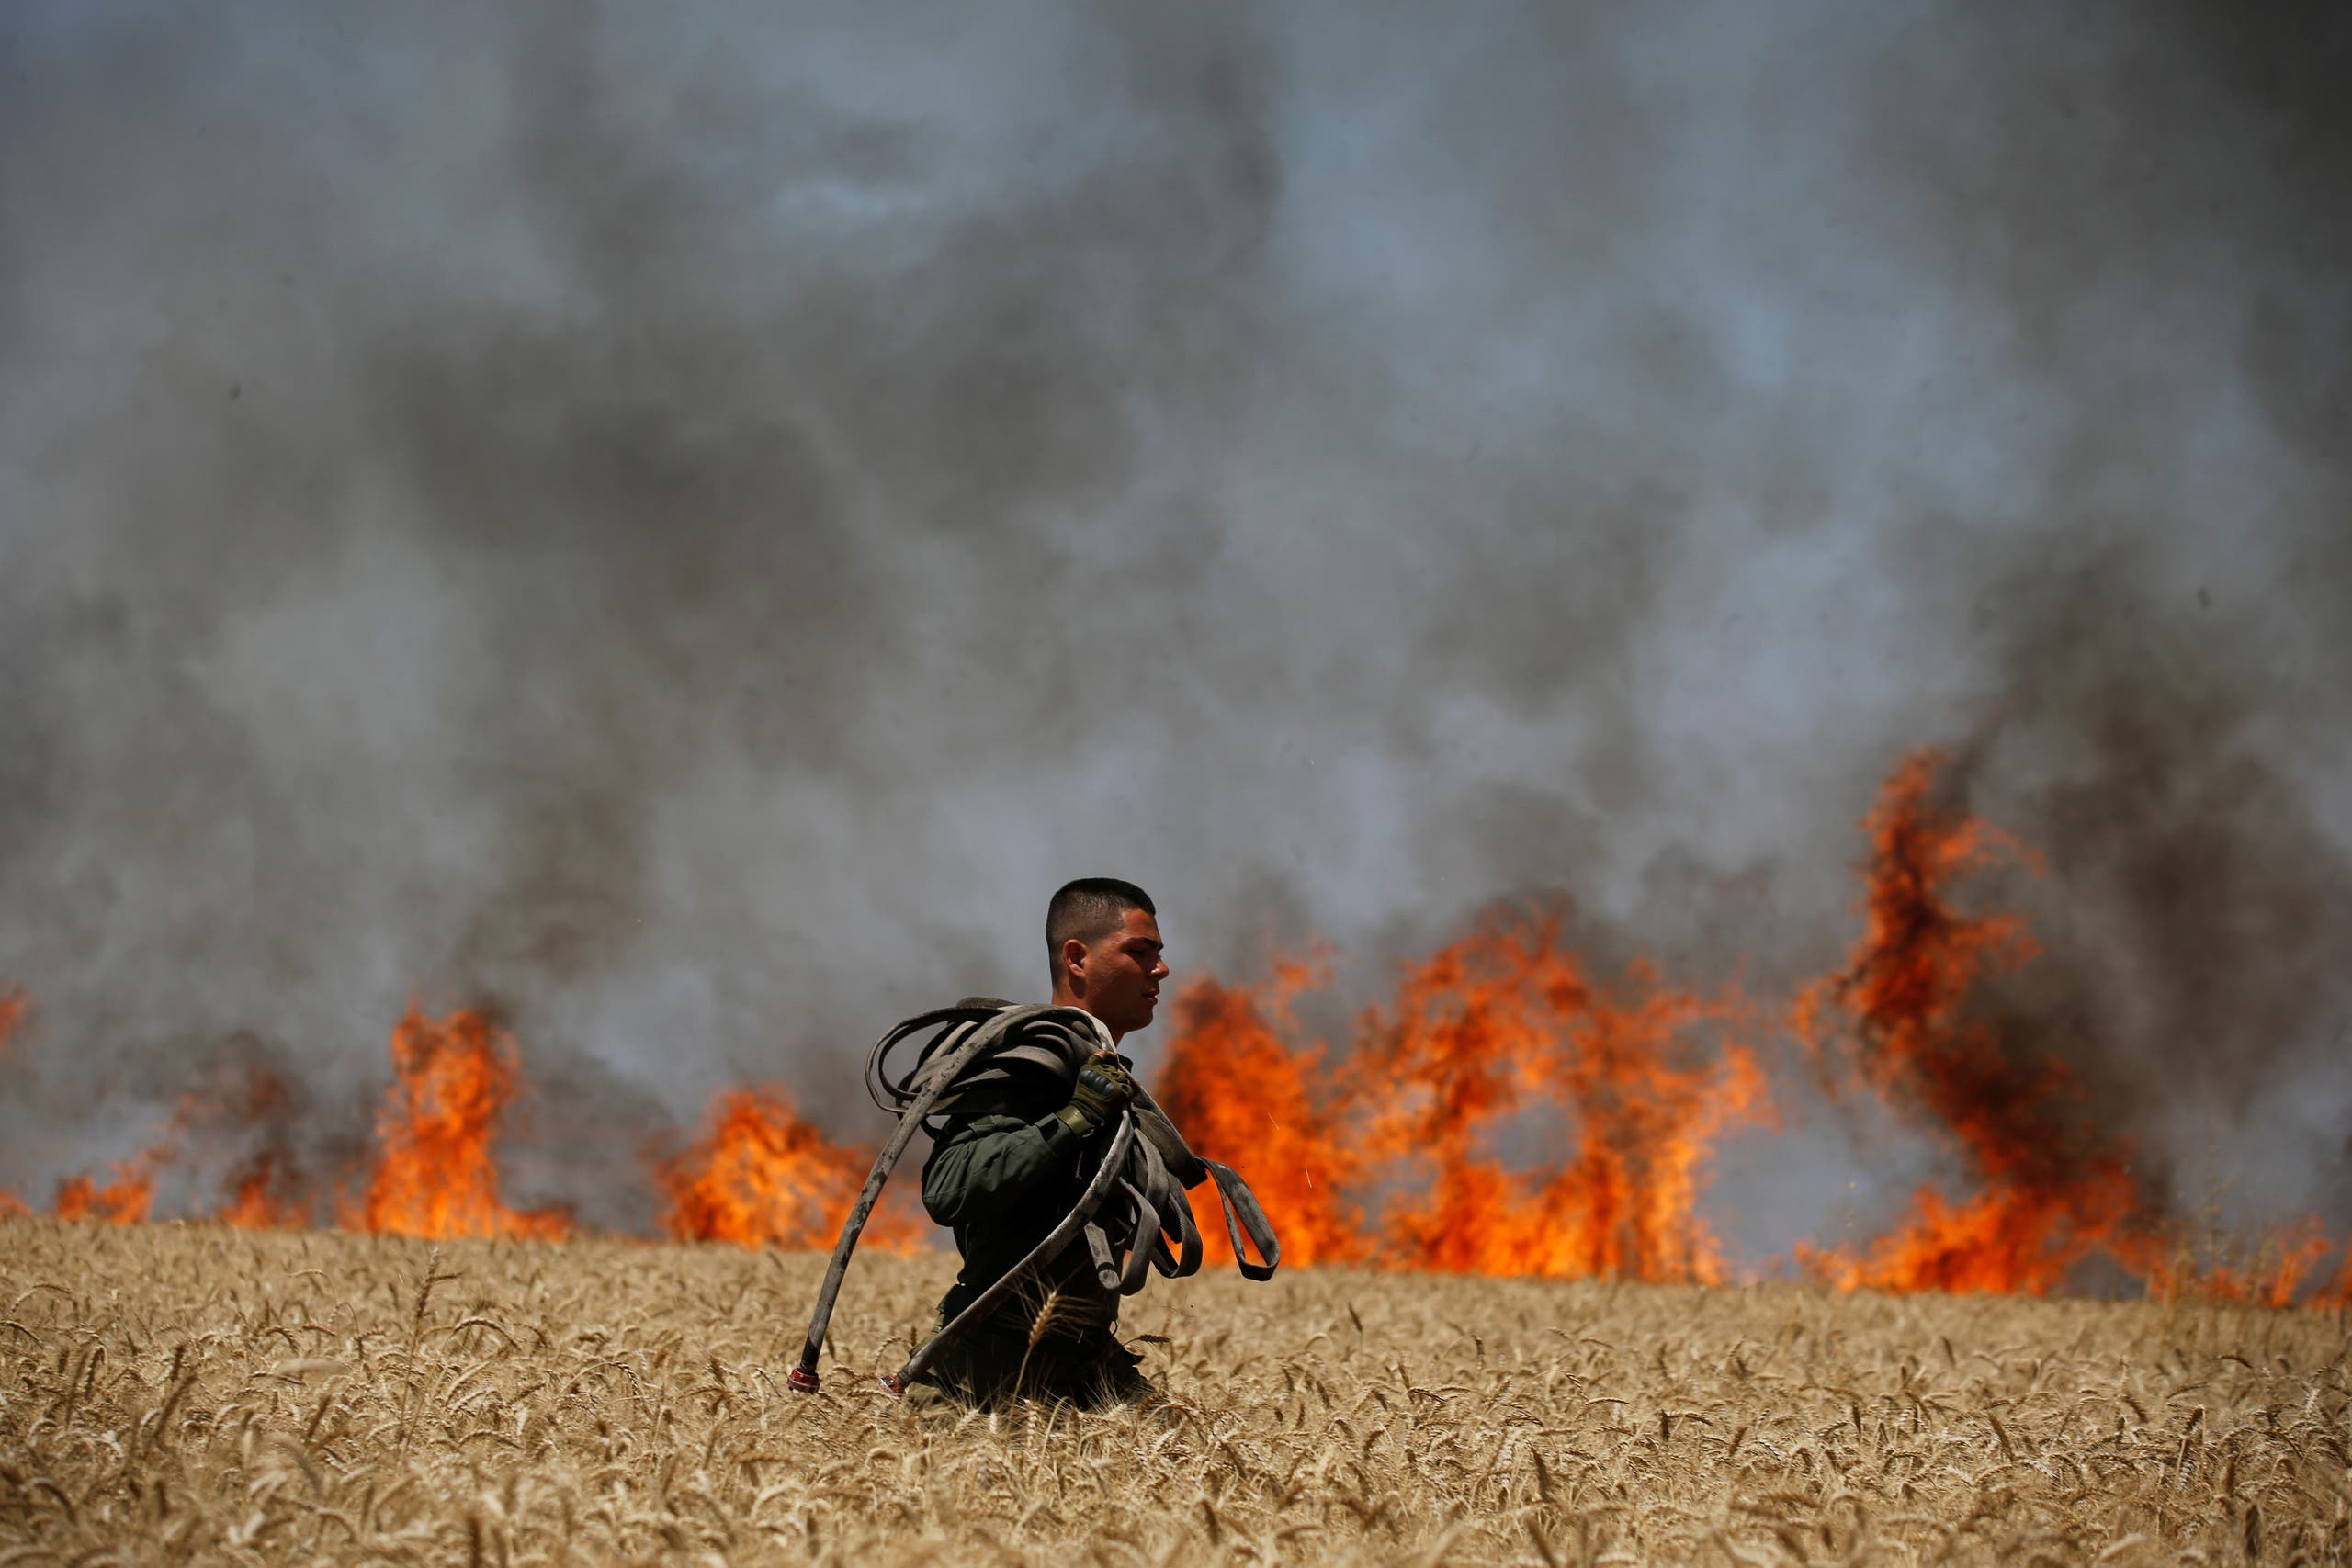 An Israeli soldier carries a hose as he walks in a burning field on the Israeli side of the border fence between Israel and Gaza near kibbutz Mefalsim, Israel. (Reuters)